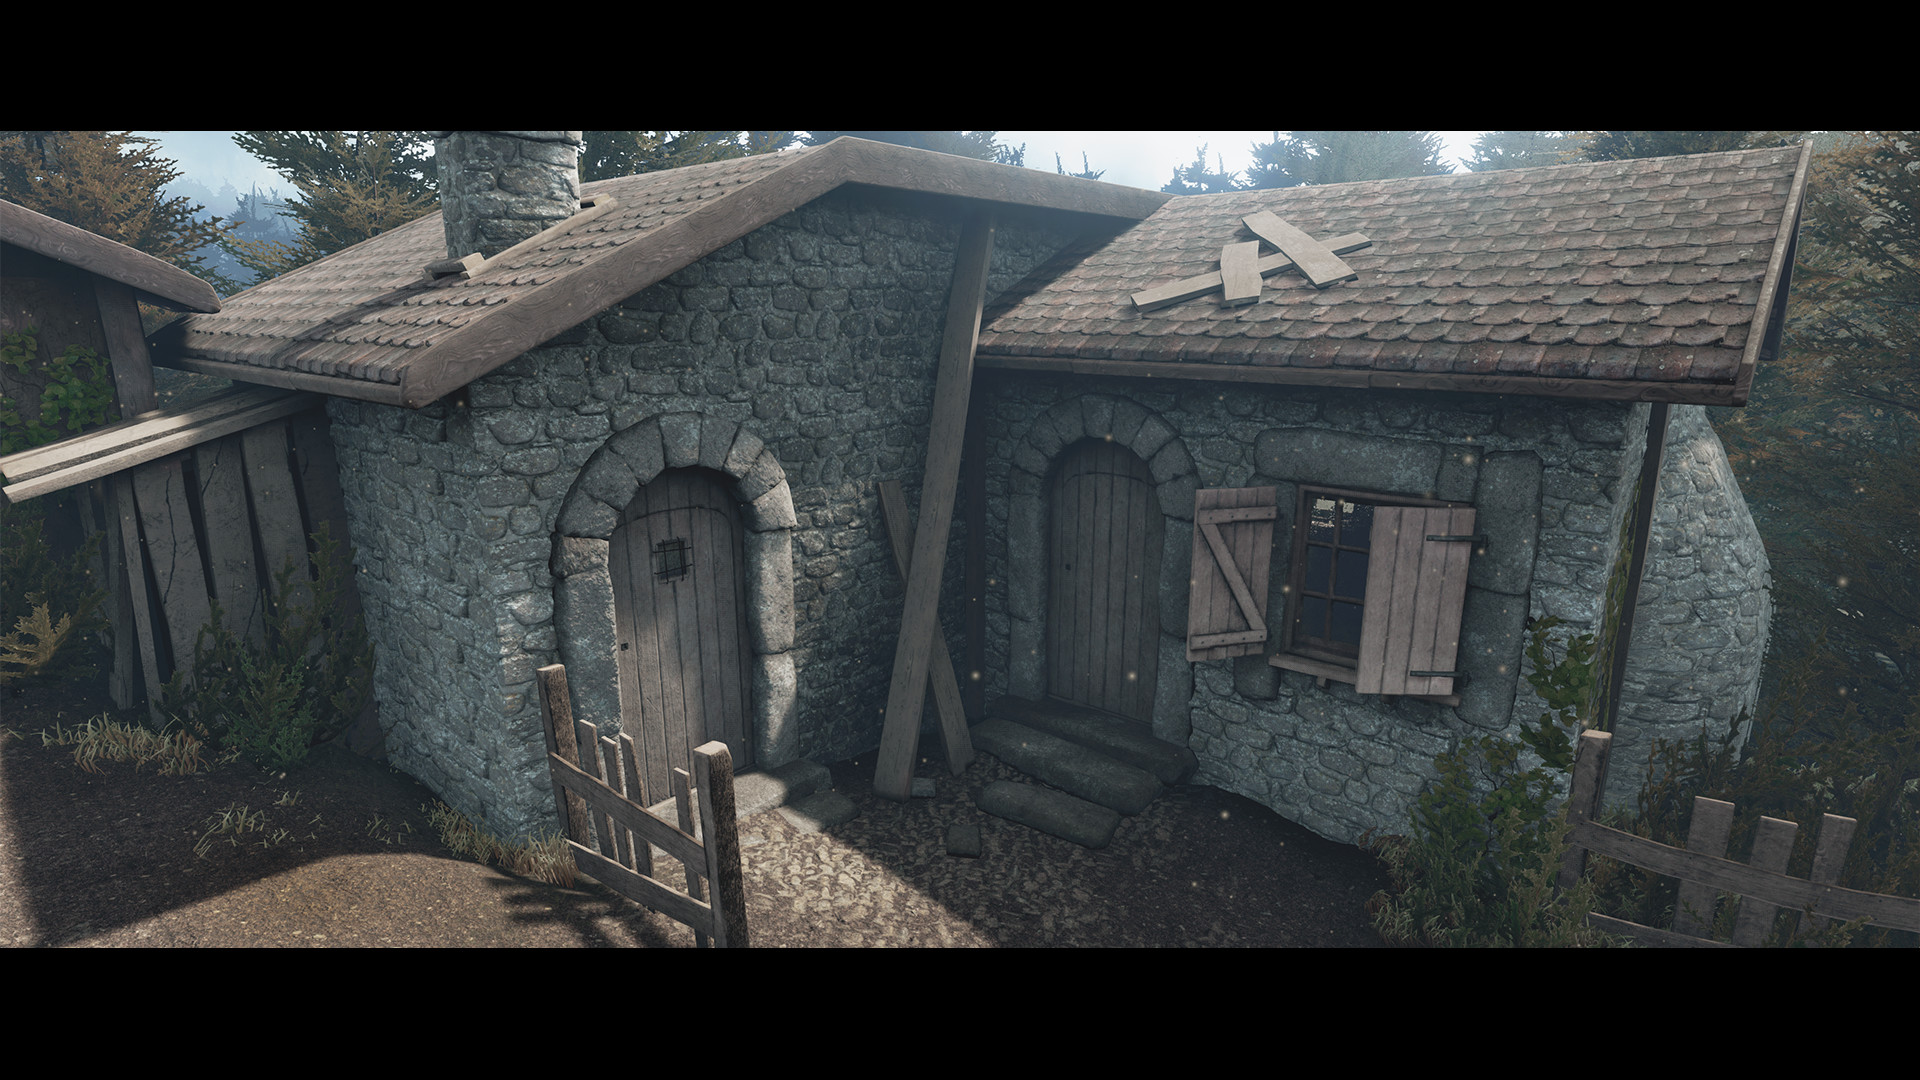 Marco maria rossi store oldvillage screenshot 2